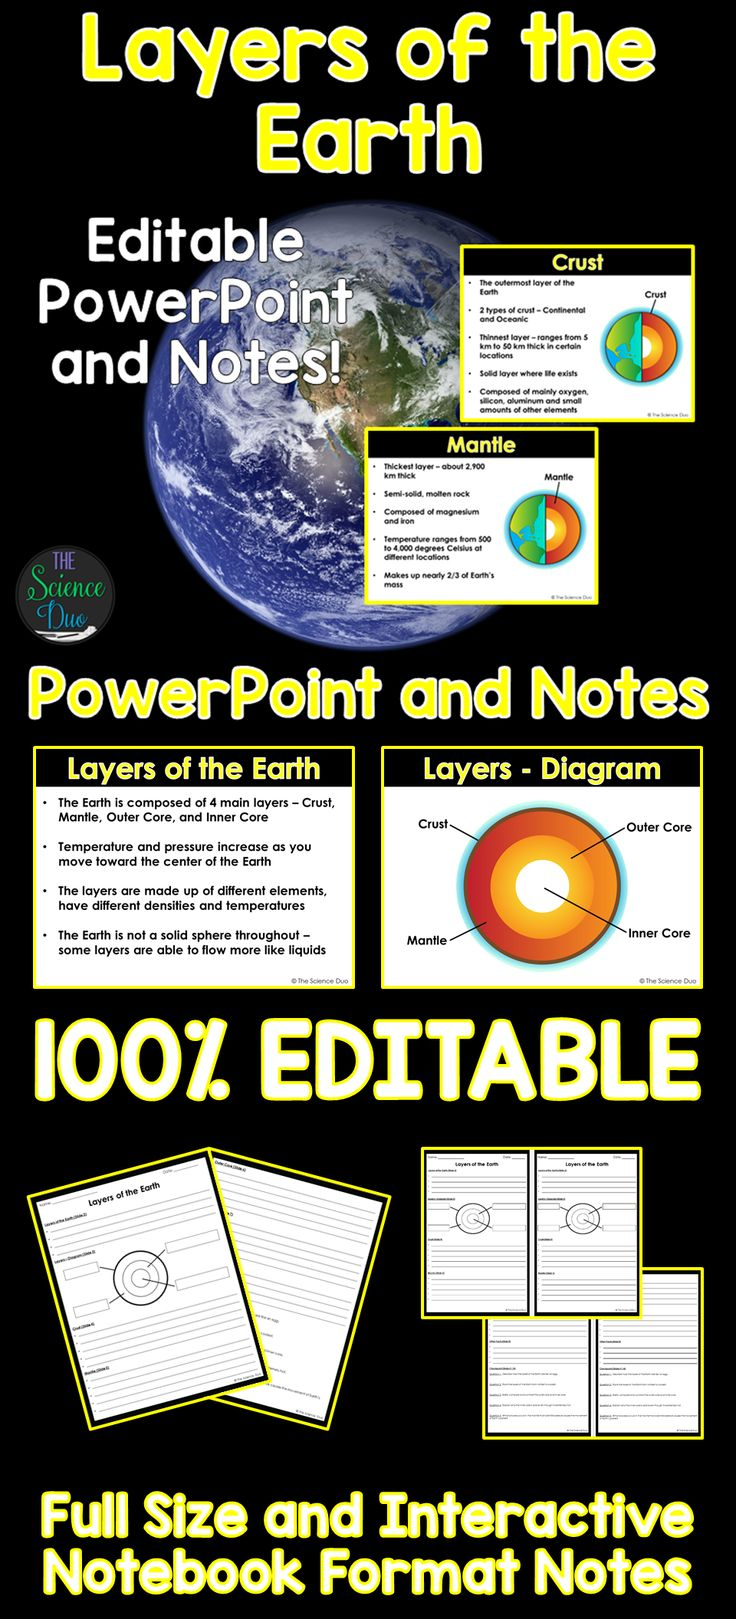 Introduce or help your students review Layers of the Earth with this PowerPoint presentation and student notes pages.  The resource covers all of the layers of the Earth: Crust, Mantle, Outer Core, and Inner Core.